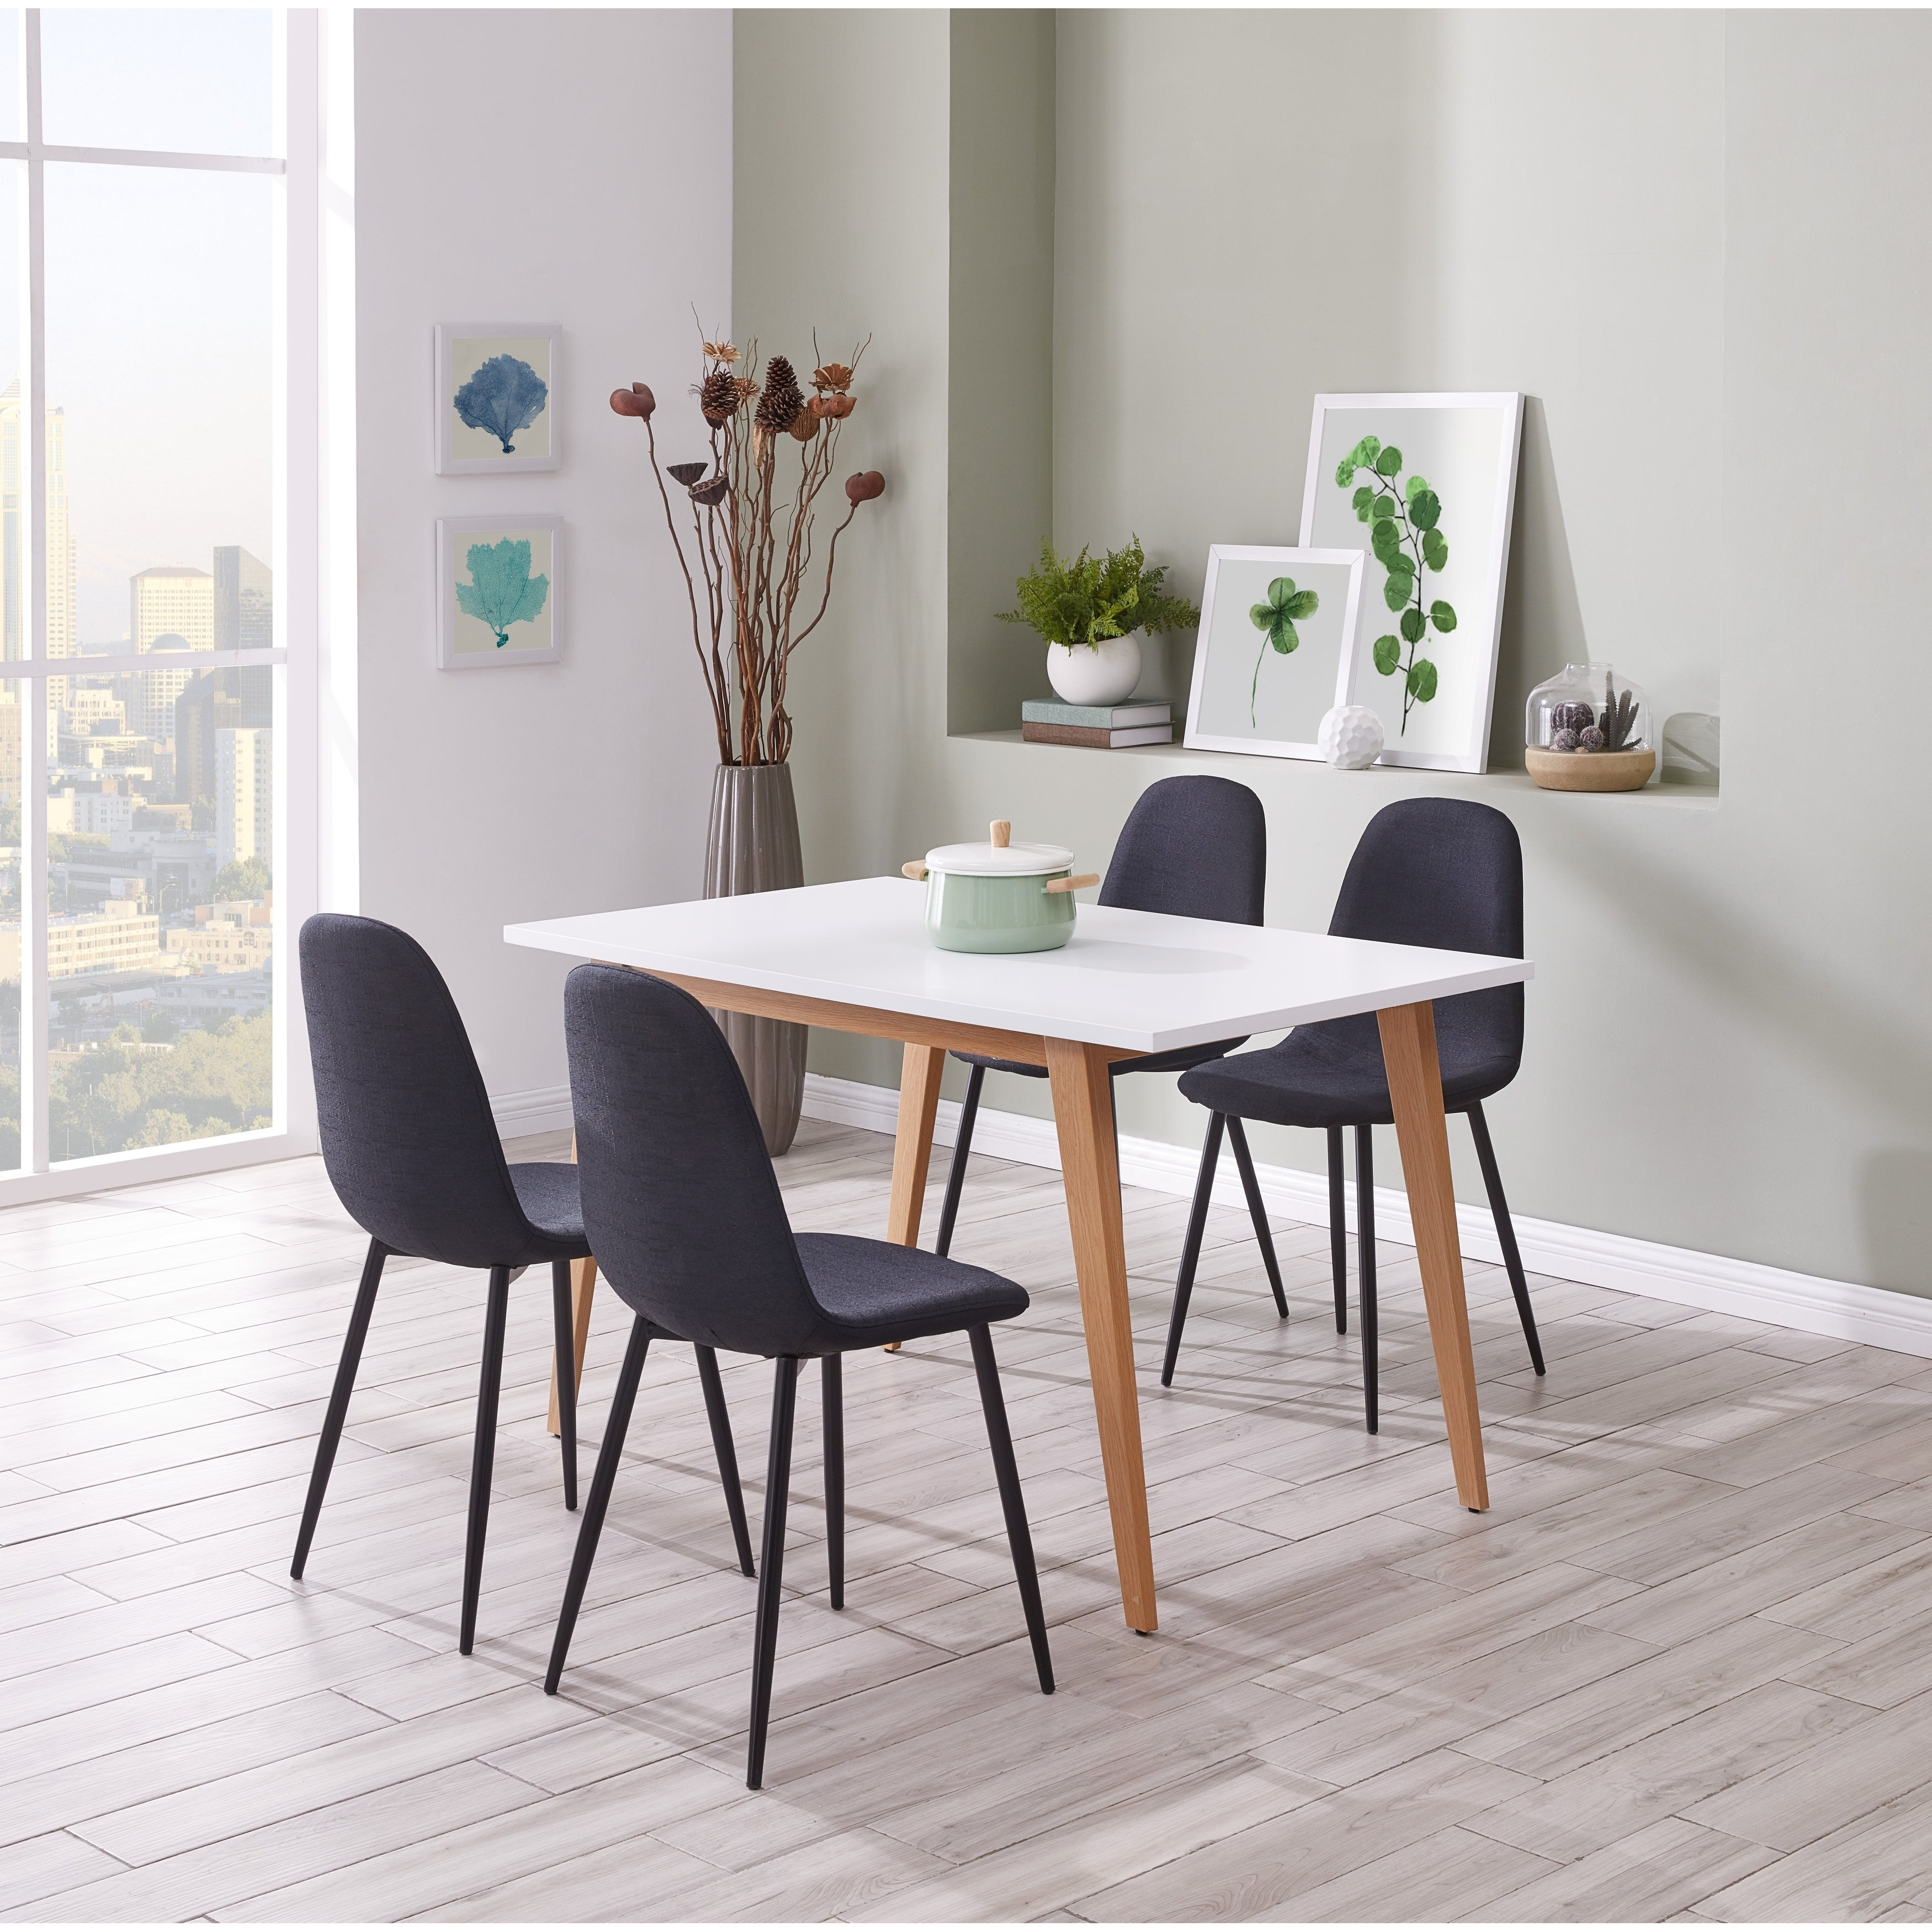 Ids Online Minimalism Style 5 Pcs White Dining Table Set